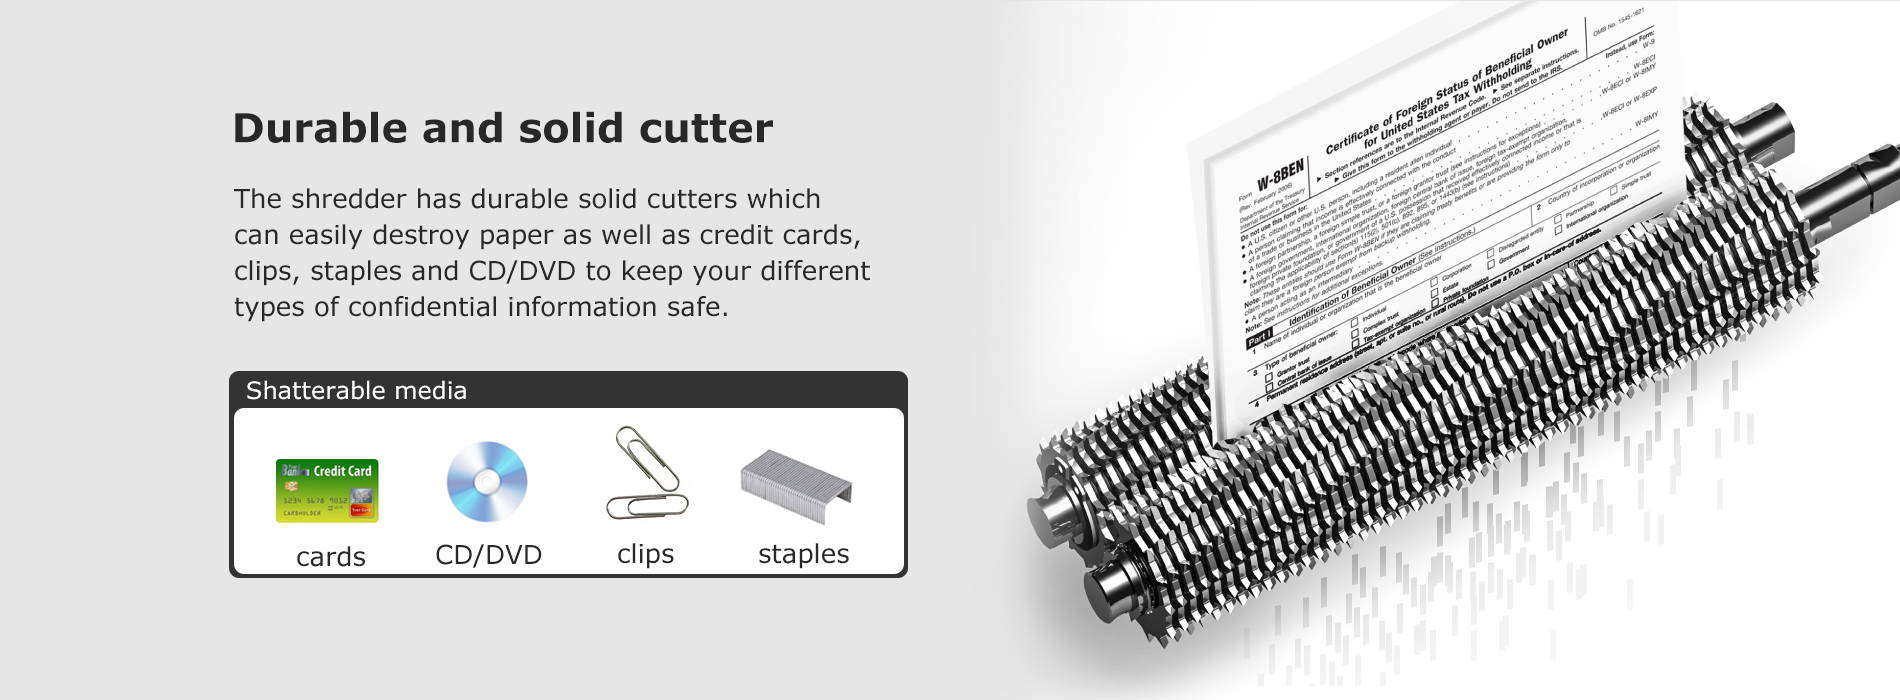 Durable and solid cutter The shredder has durable solid cutters which can easily destroy paper as well as credit cards, clips, staples and CD/DVD to keep your different types of confidential information safe.